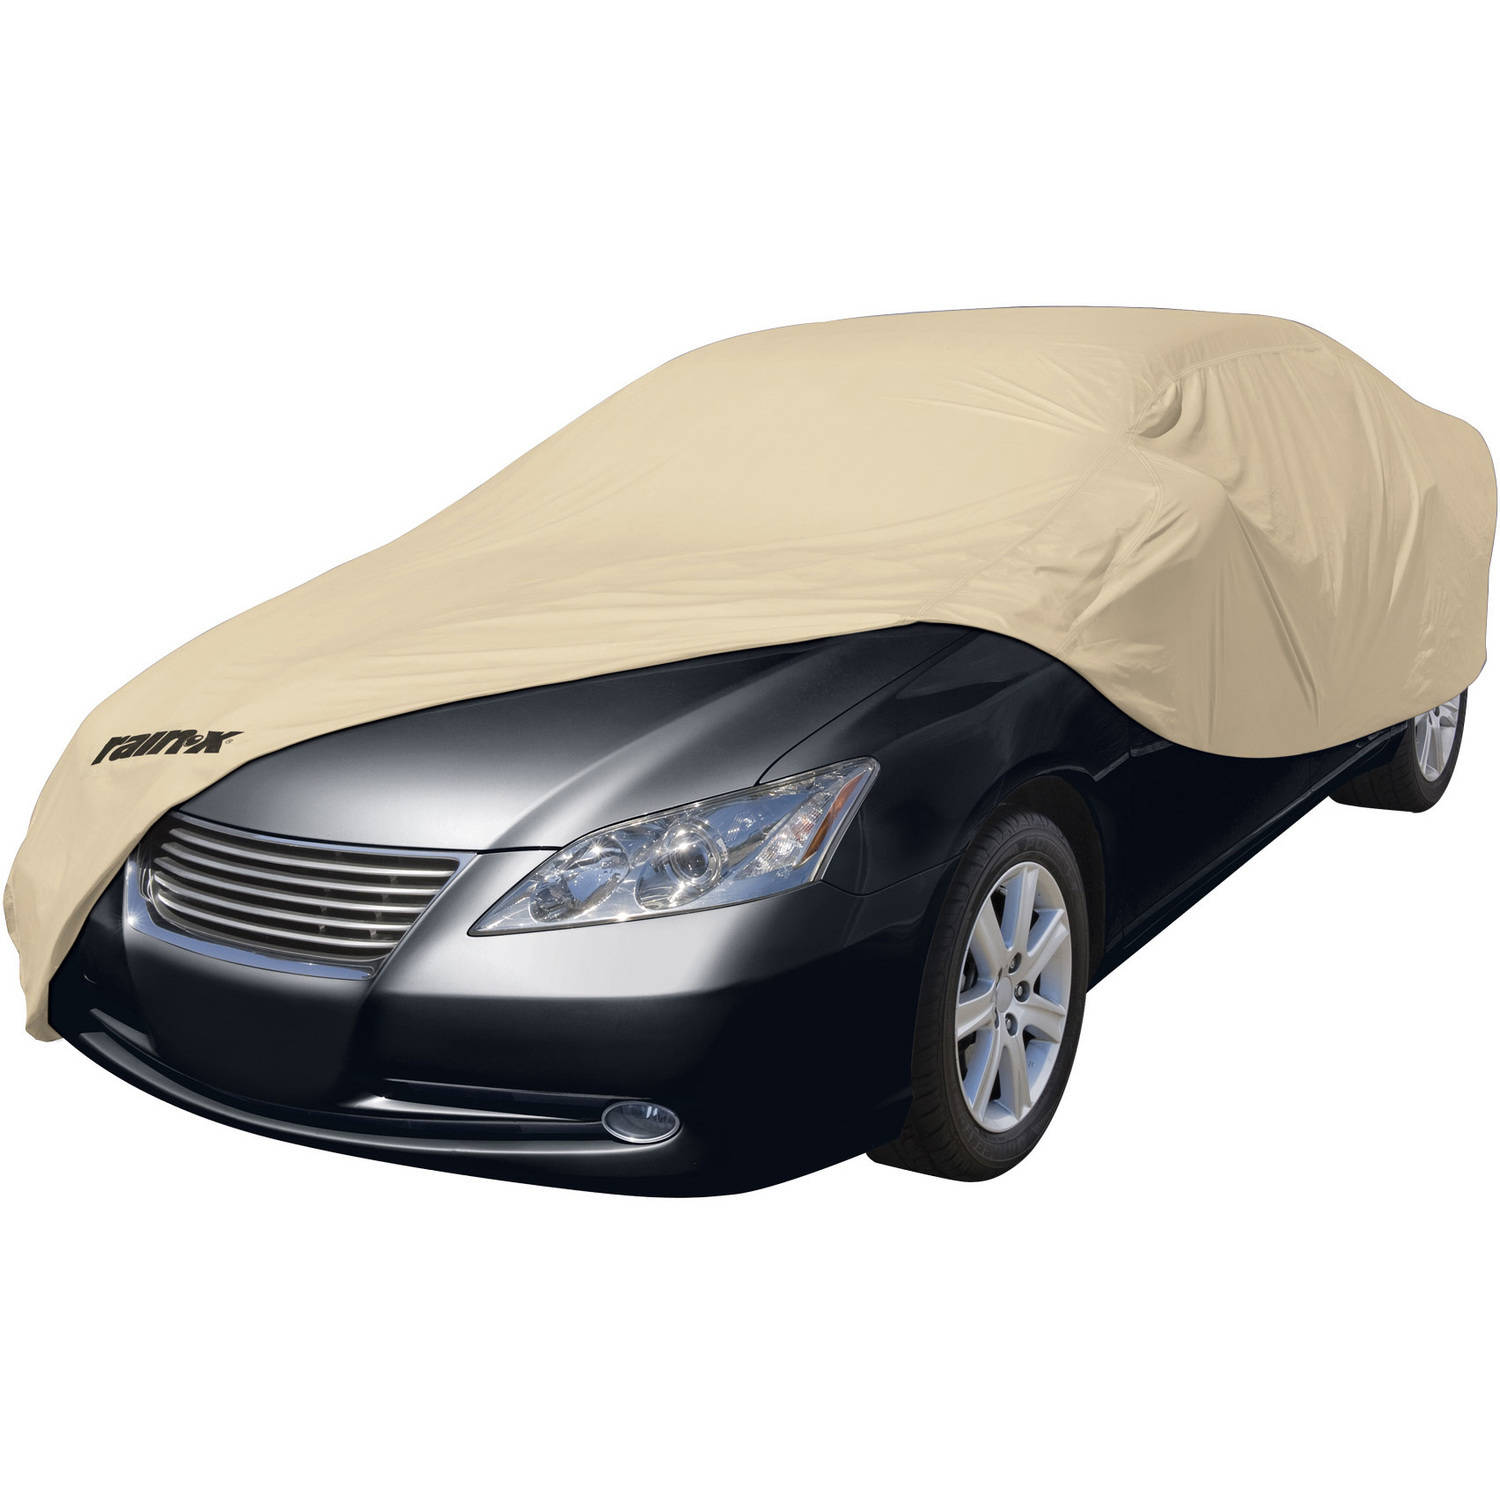 Universal Fit Car Cover, XL